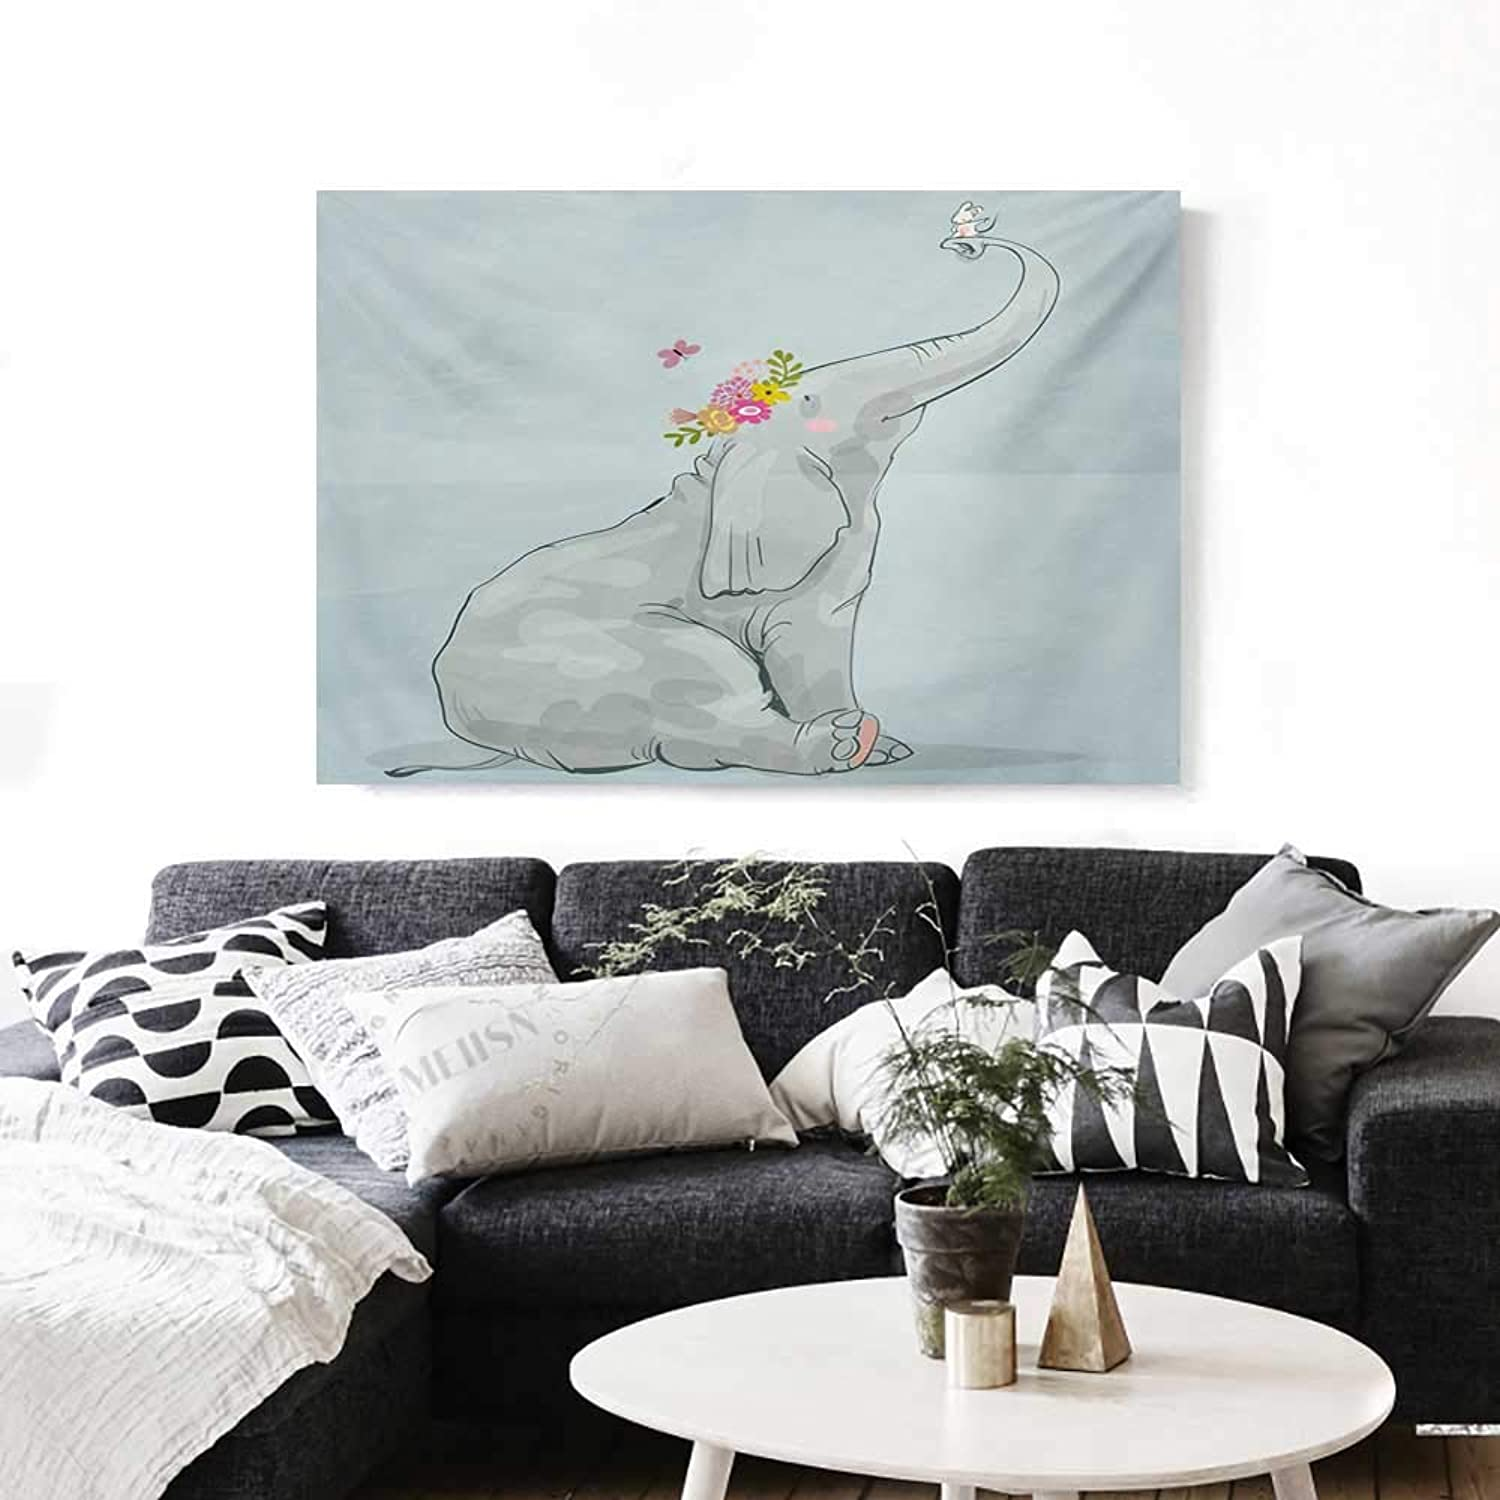 Elephant Nursery Canvas Wall Art for Bedroom Home Decorations Elephant and Little Mouse Friendship Fun Art Hand Drawn Flowers Design Art Stickers 48 x32  Multicolor